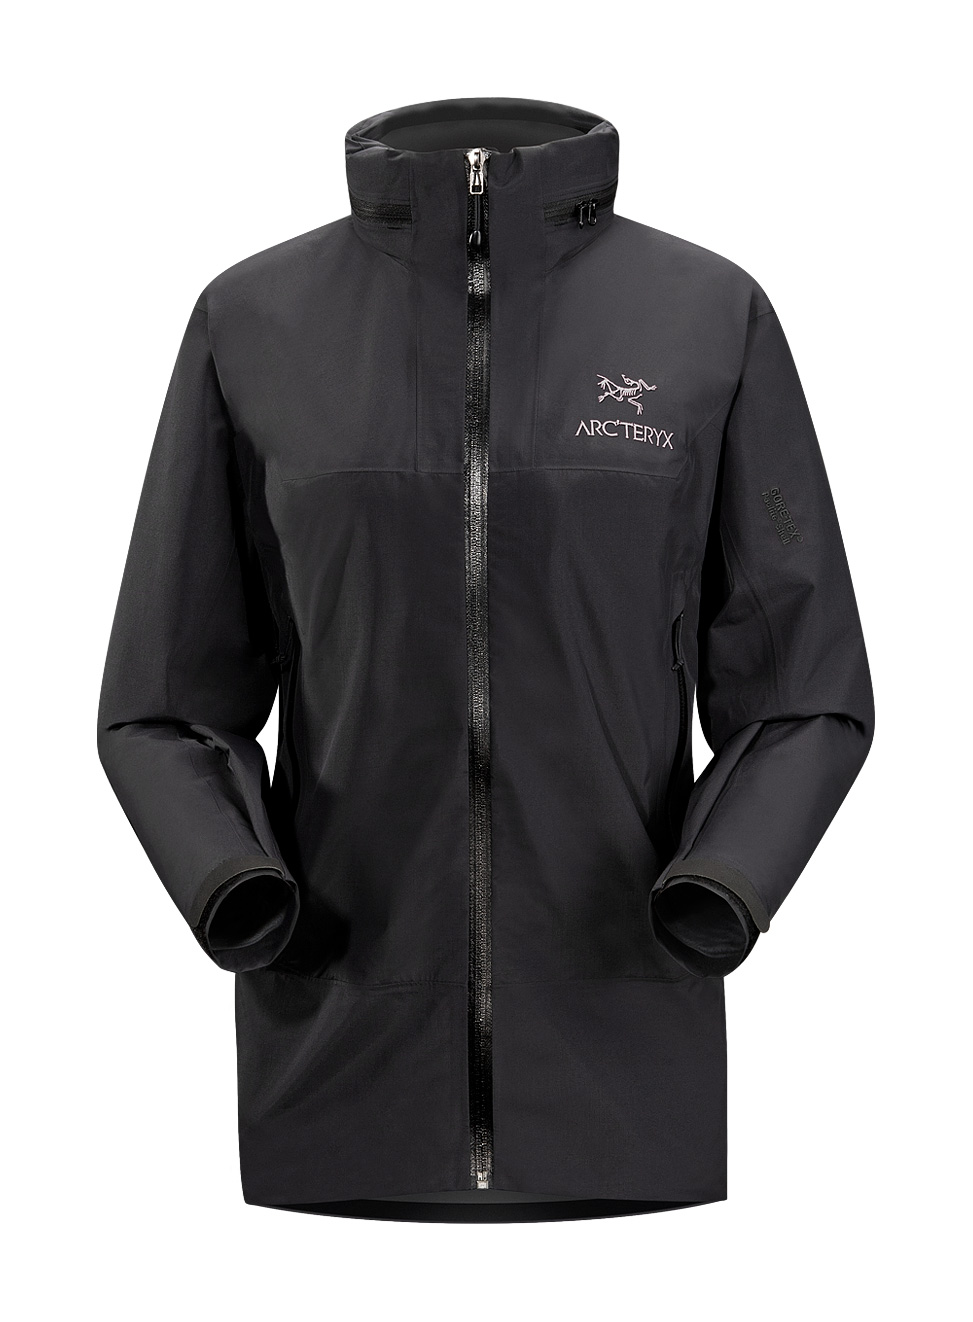 Arcteryx Jackets Women Black/Black Theta SL Hybrid Jacket - New